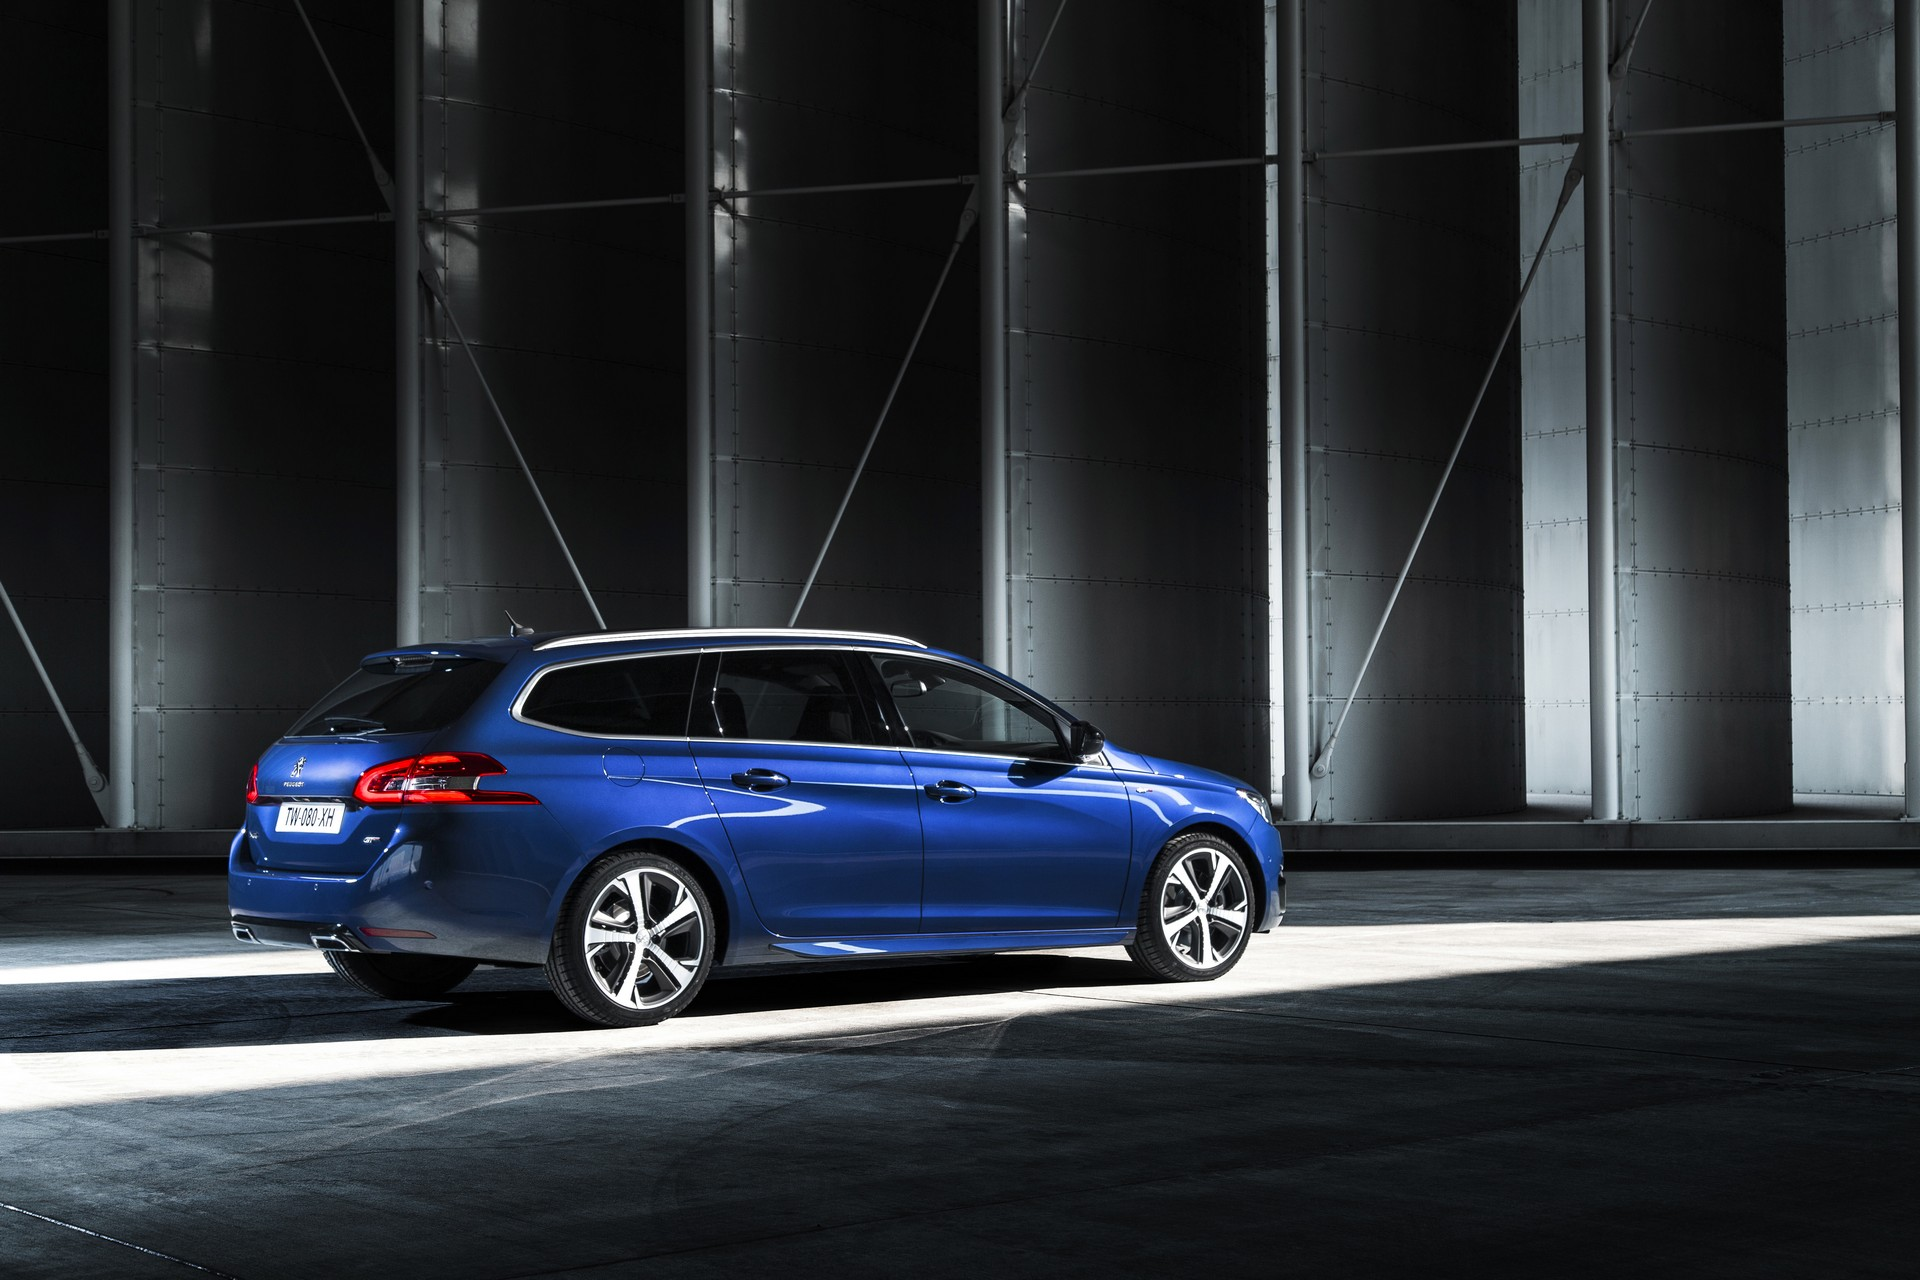 2015 Peugeot 308 GT 05 Images - Peugeot officially reveals 308 GT